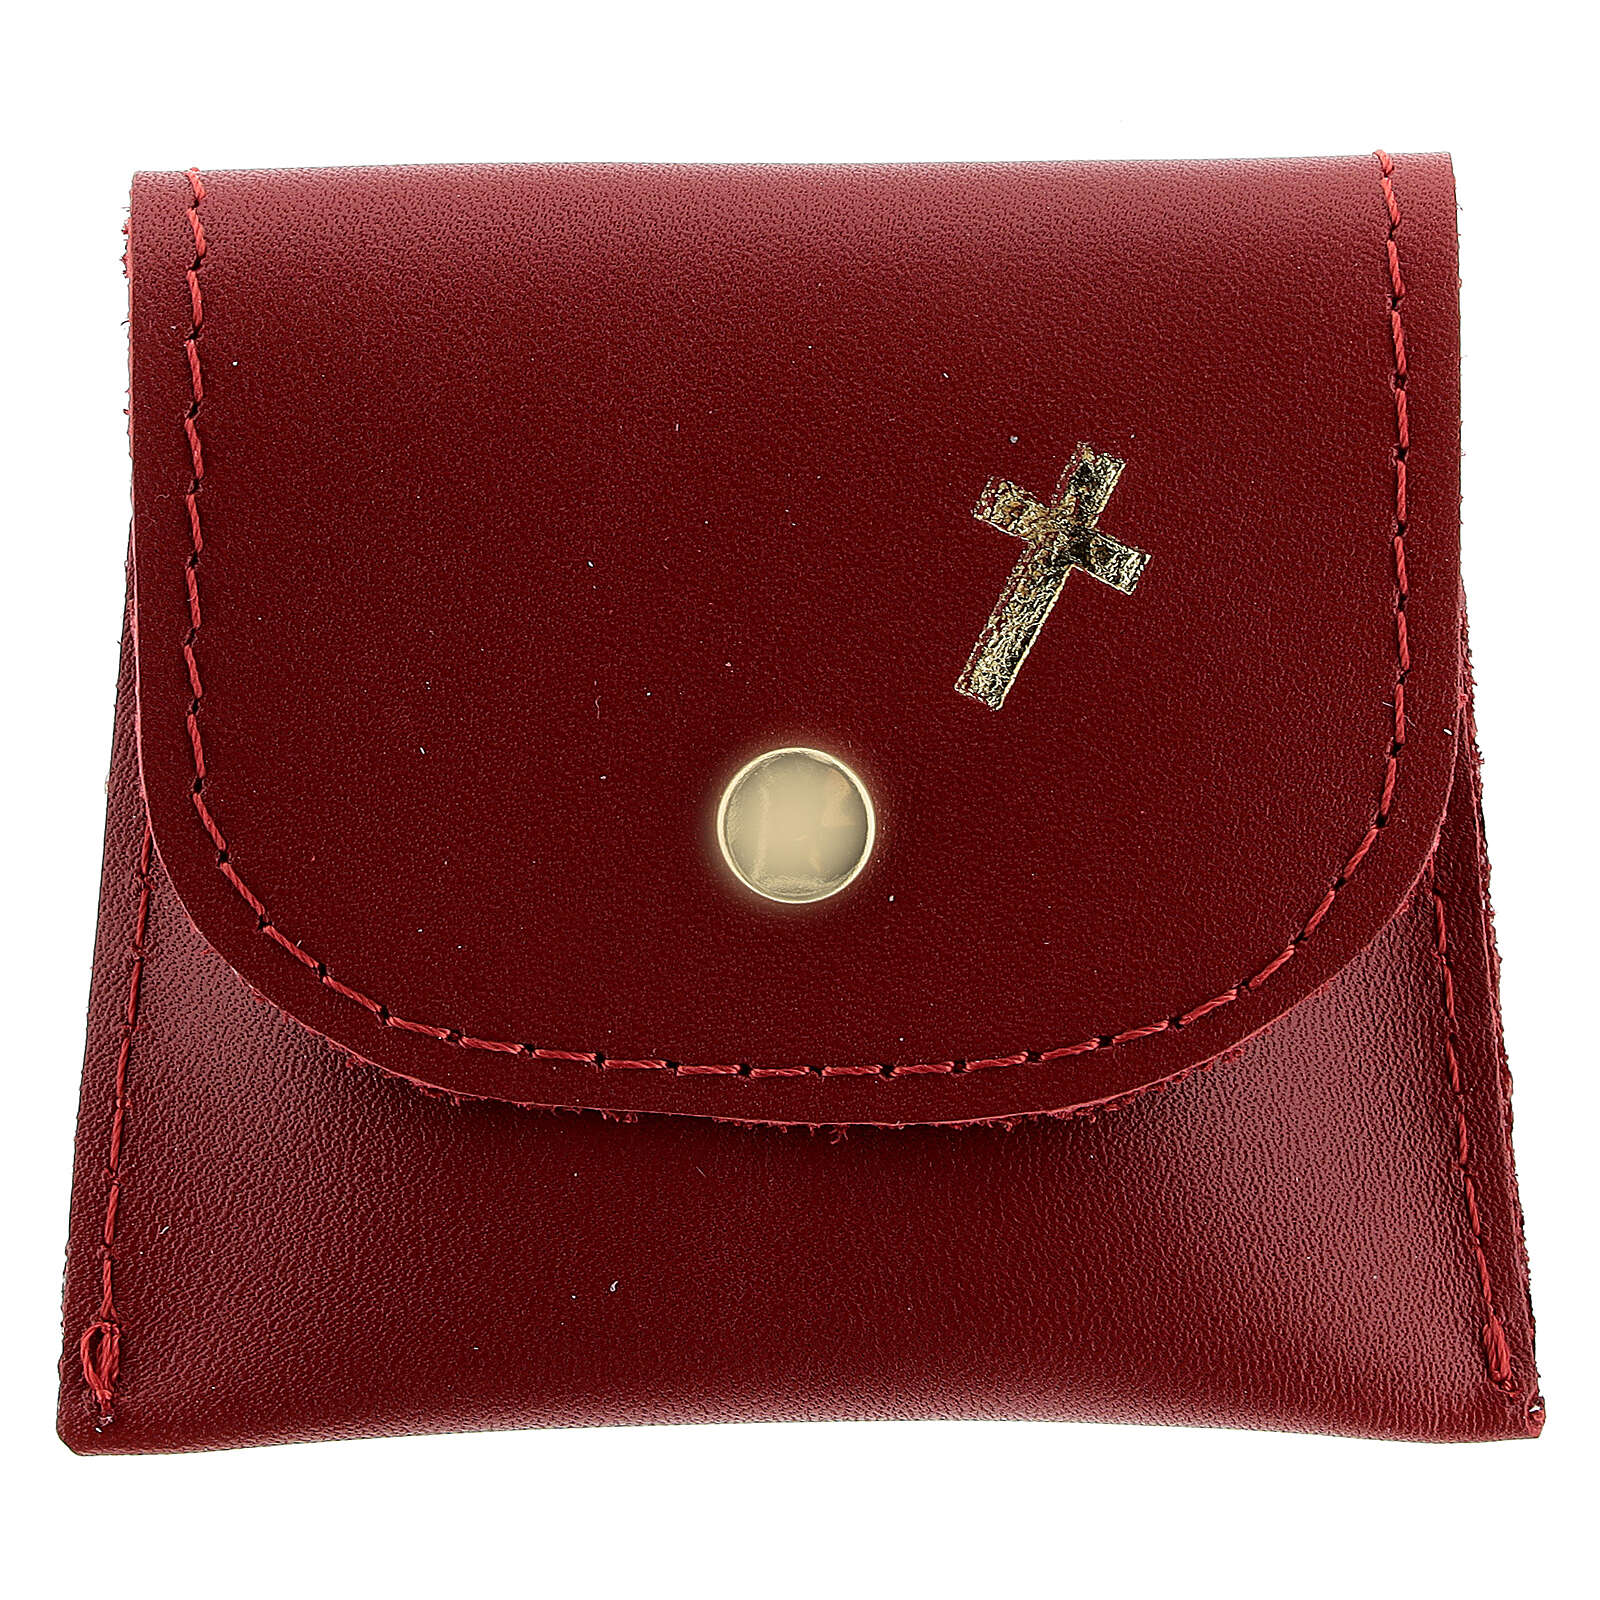 Red leather rosary case with golden cross 3x3 in 4